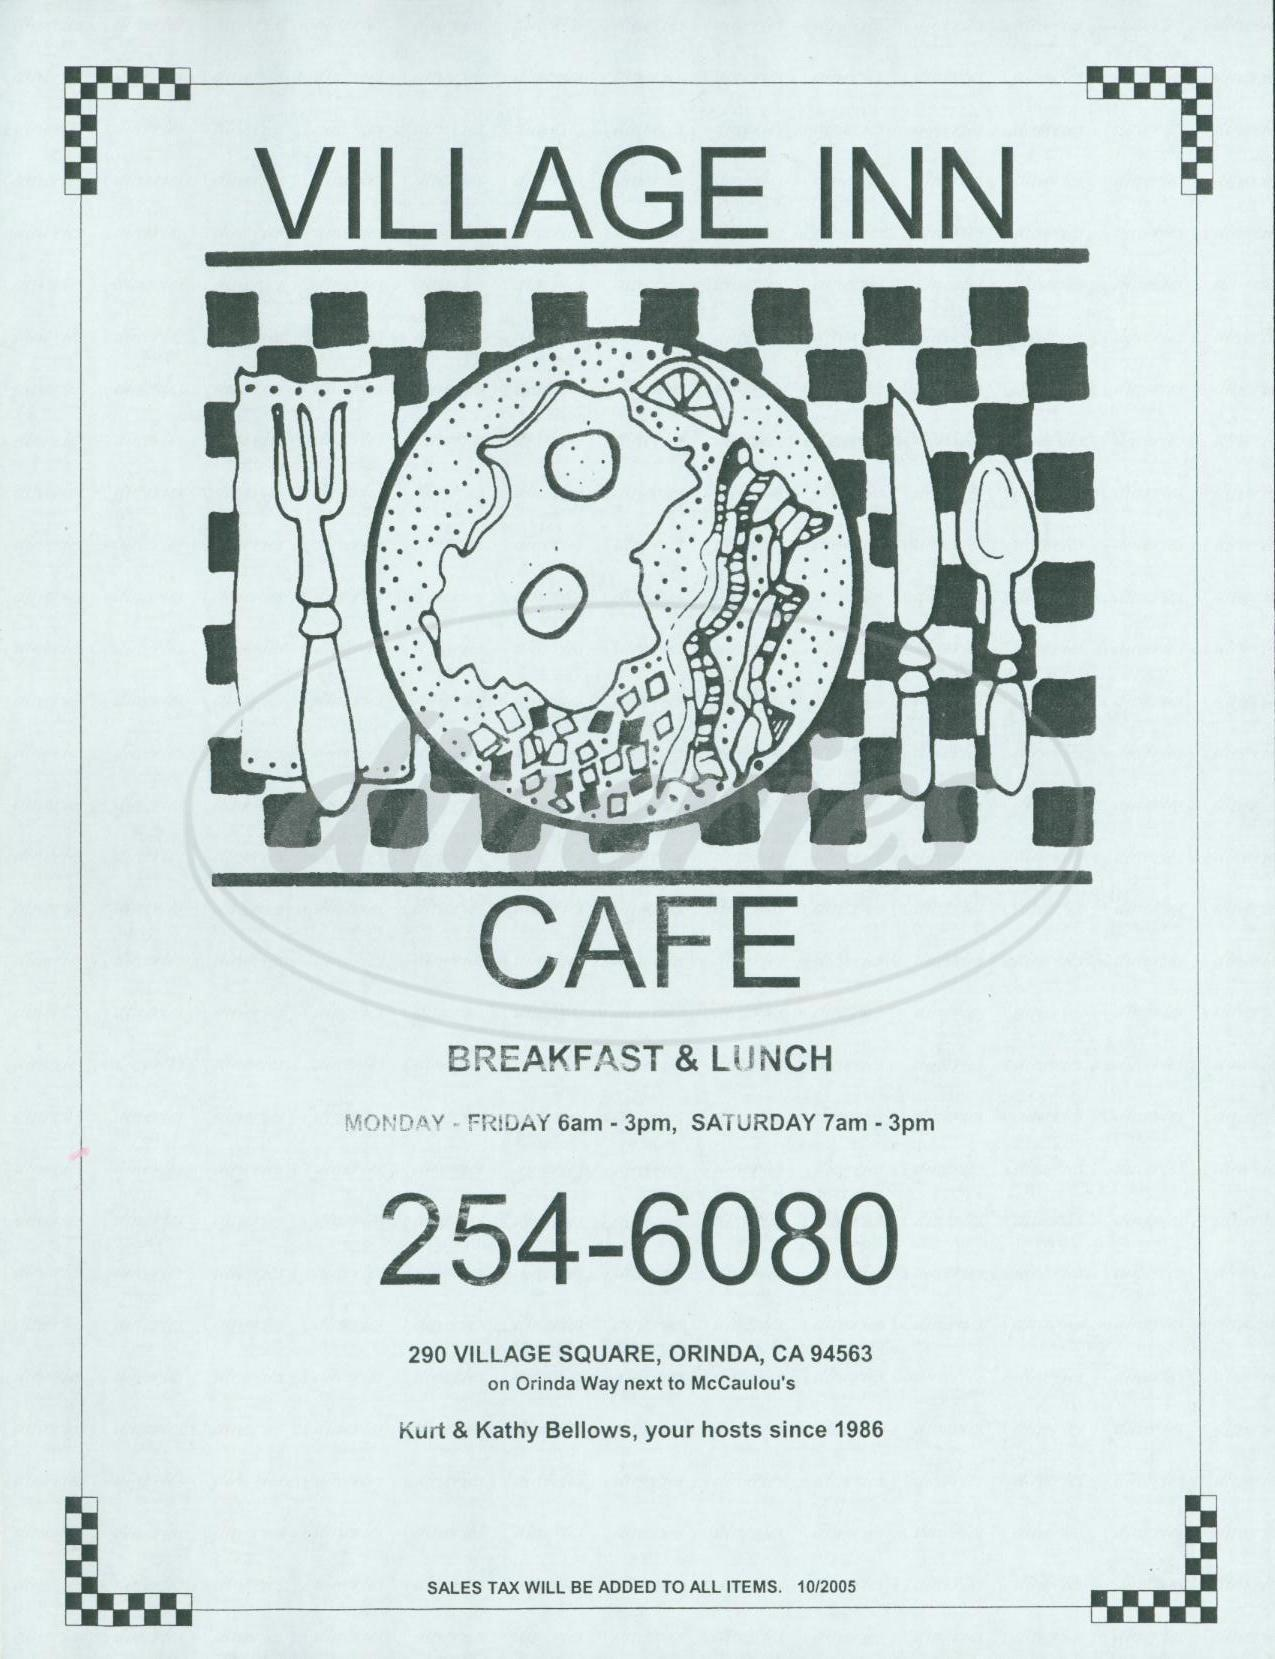 menu for Village Inn Cafe